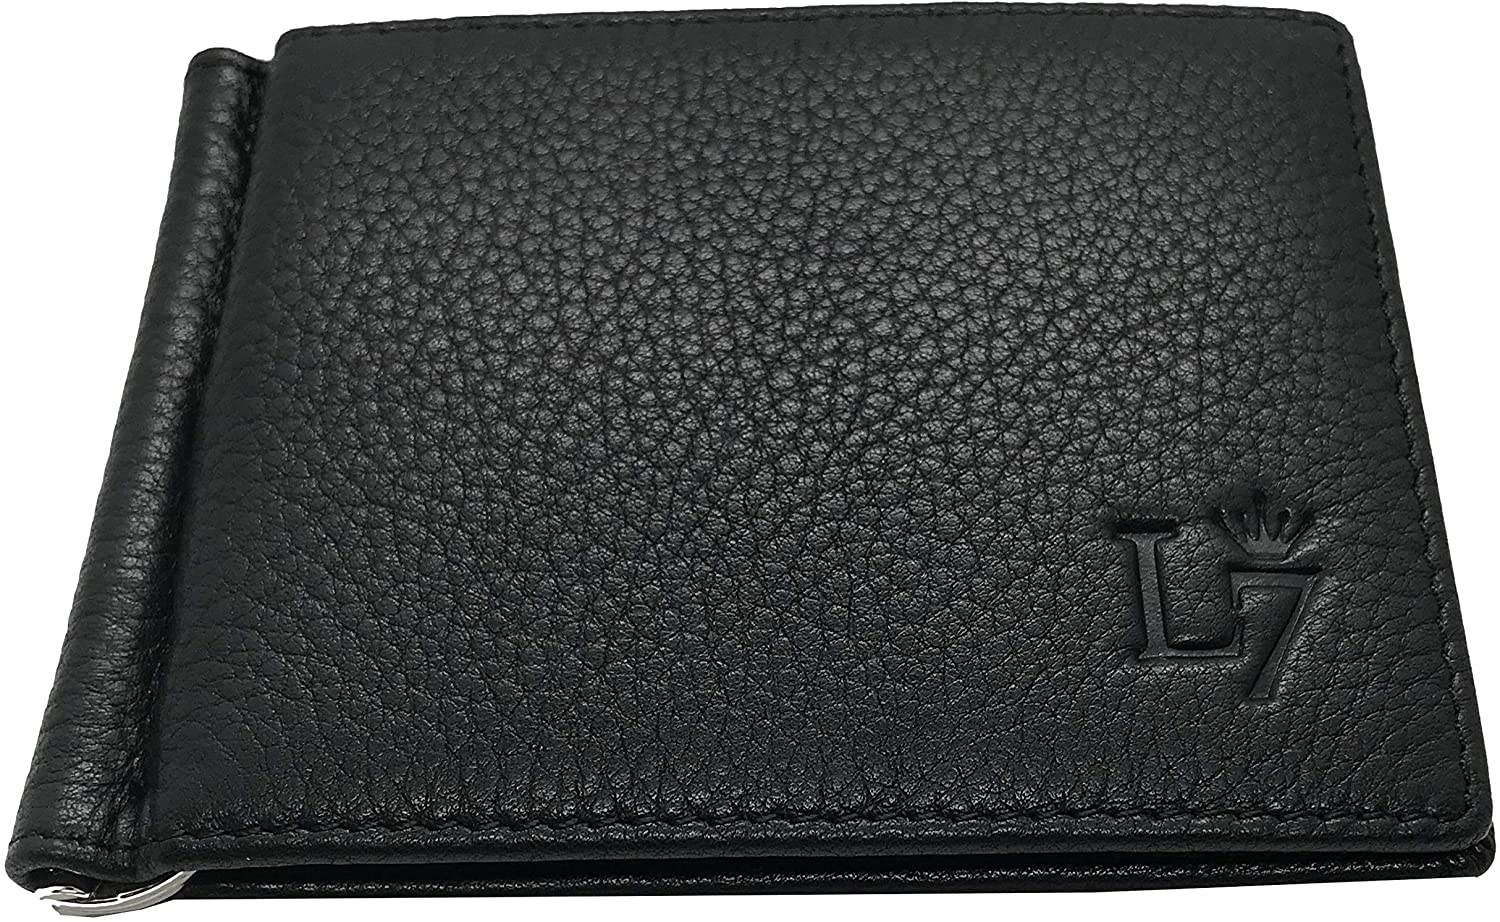 Luxe 7 Wallet 'Luxe Collection SSD' RFID Money Clip Wallets for Men - Classic Mens Wallet With Coin Pocket-Coin Pouch Luxe Wallet (Jetsetter Black)